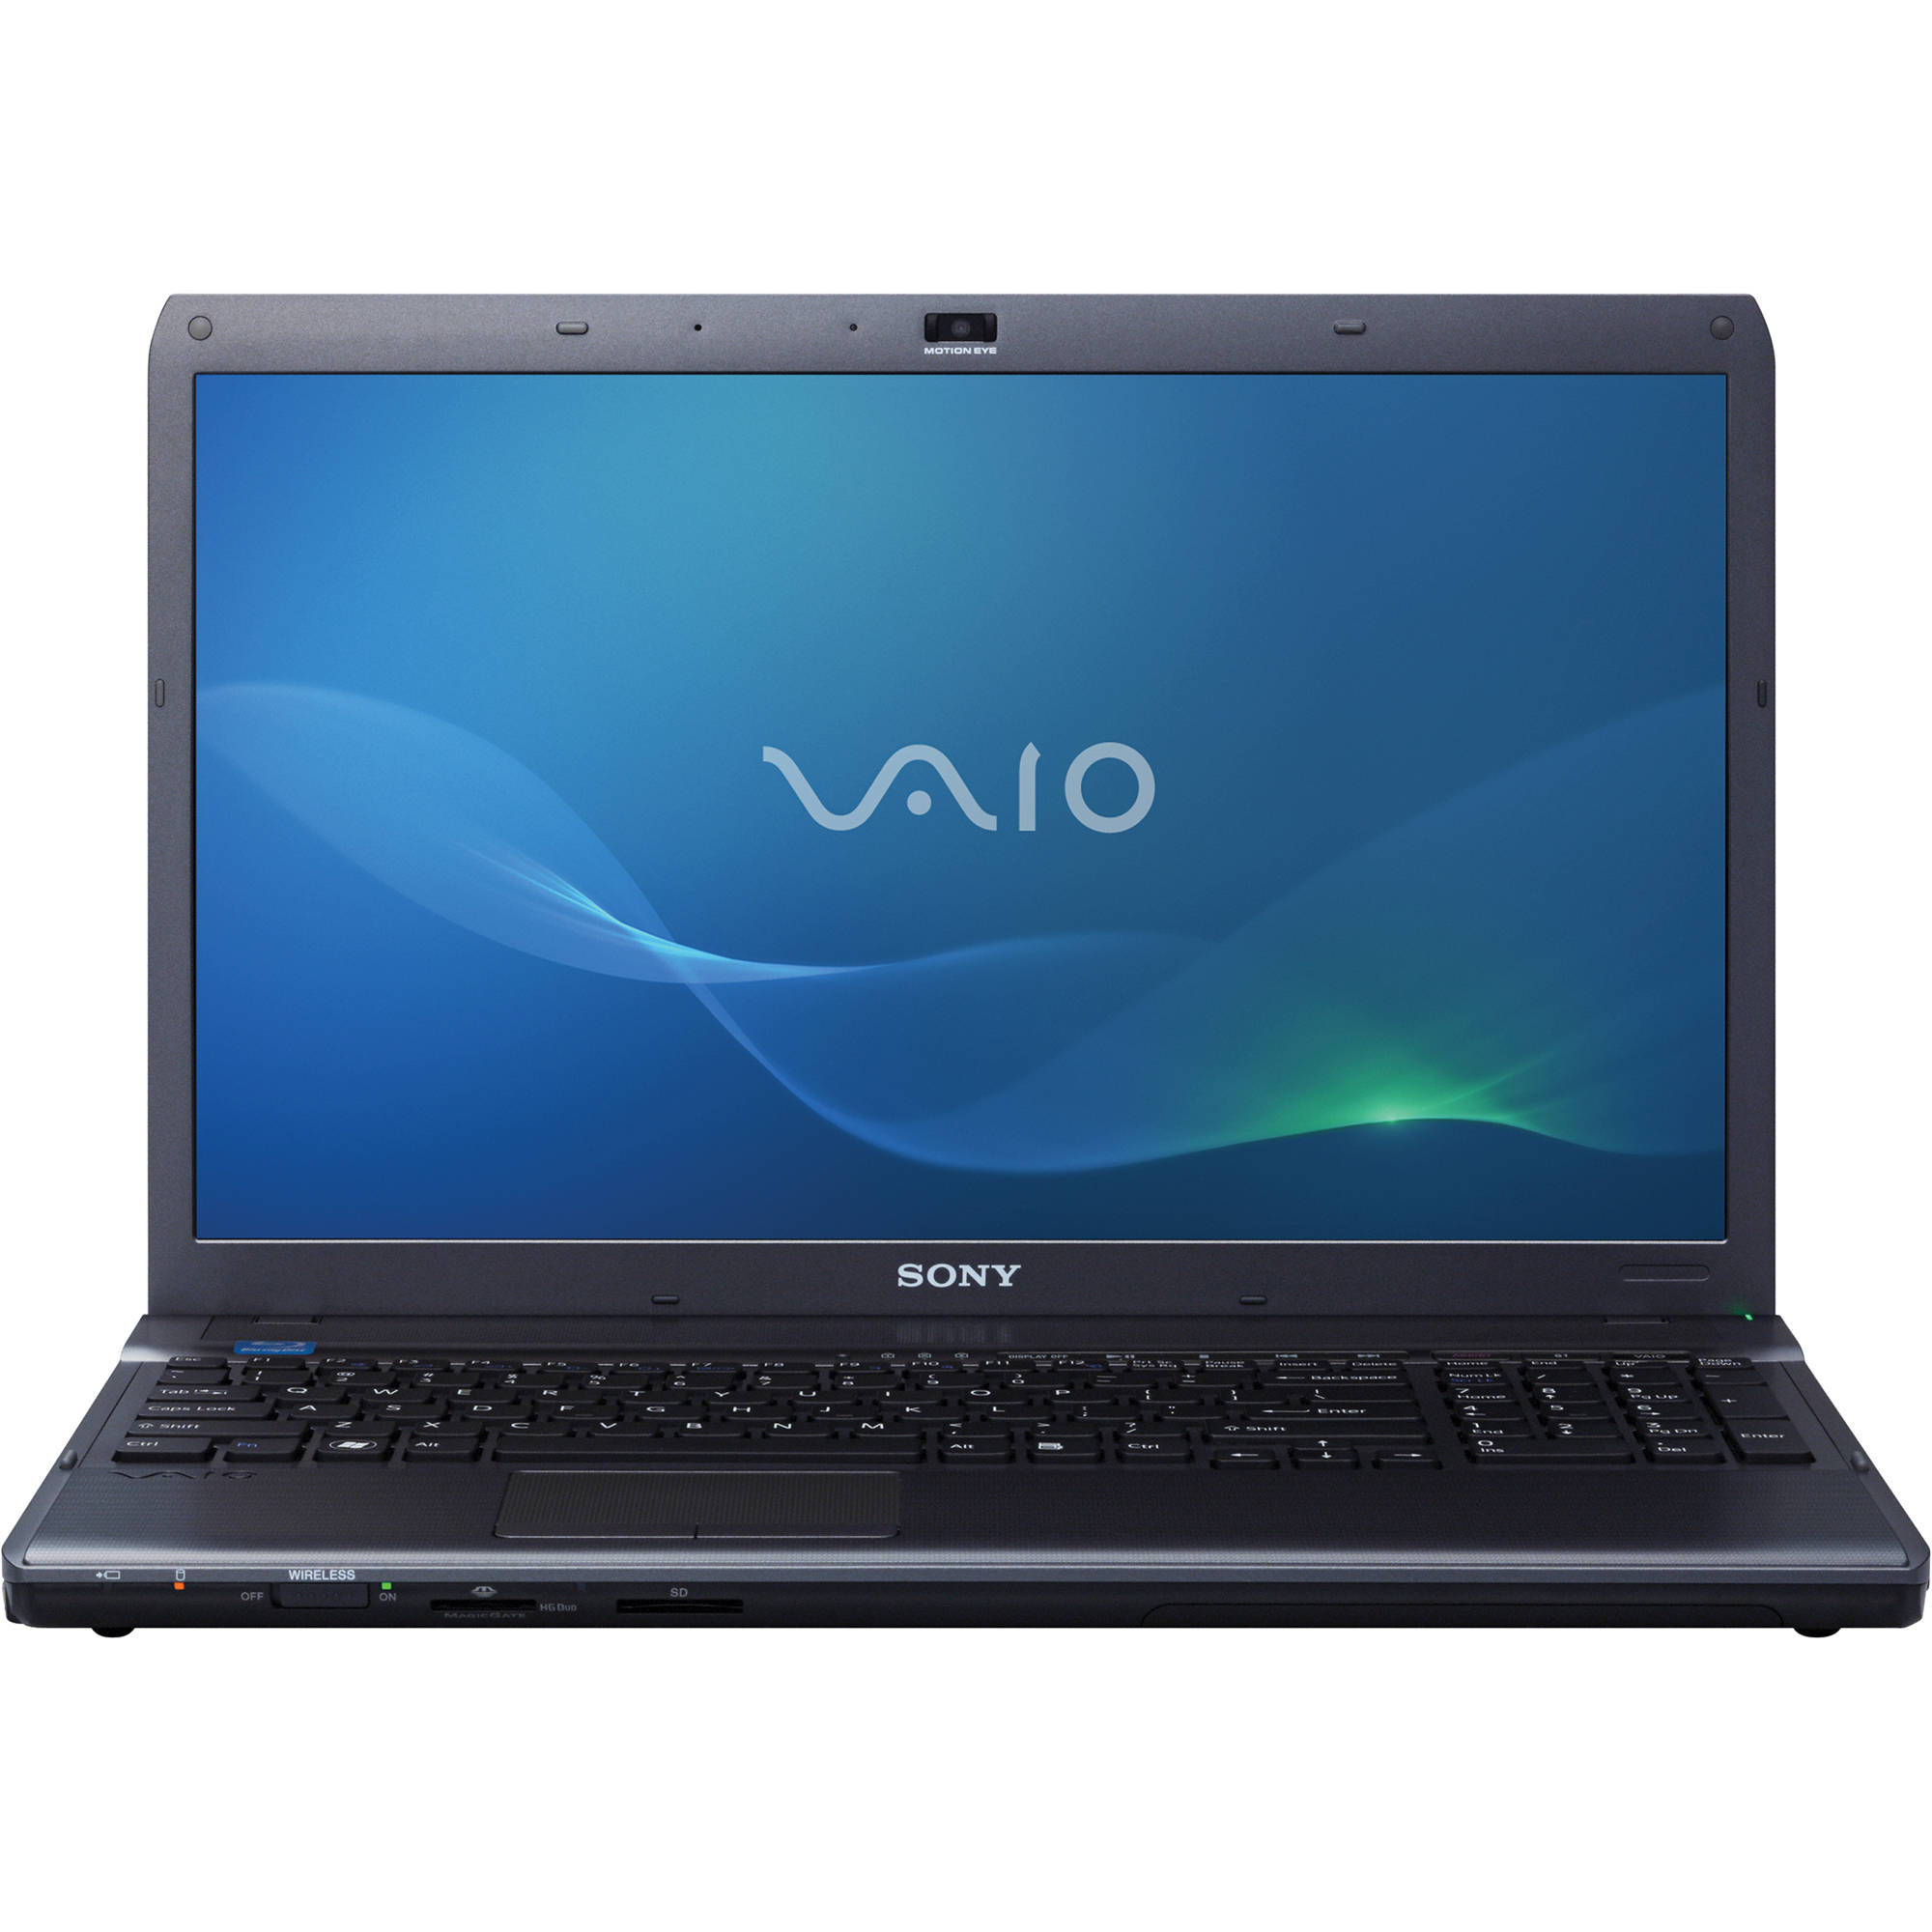 Sony Vaio VPCF121FX Drivers for Windows Download